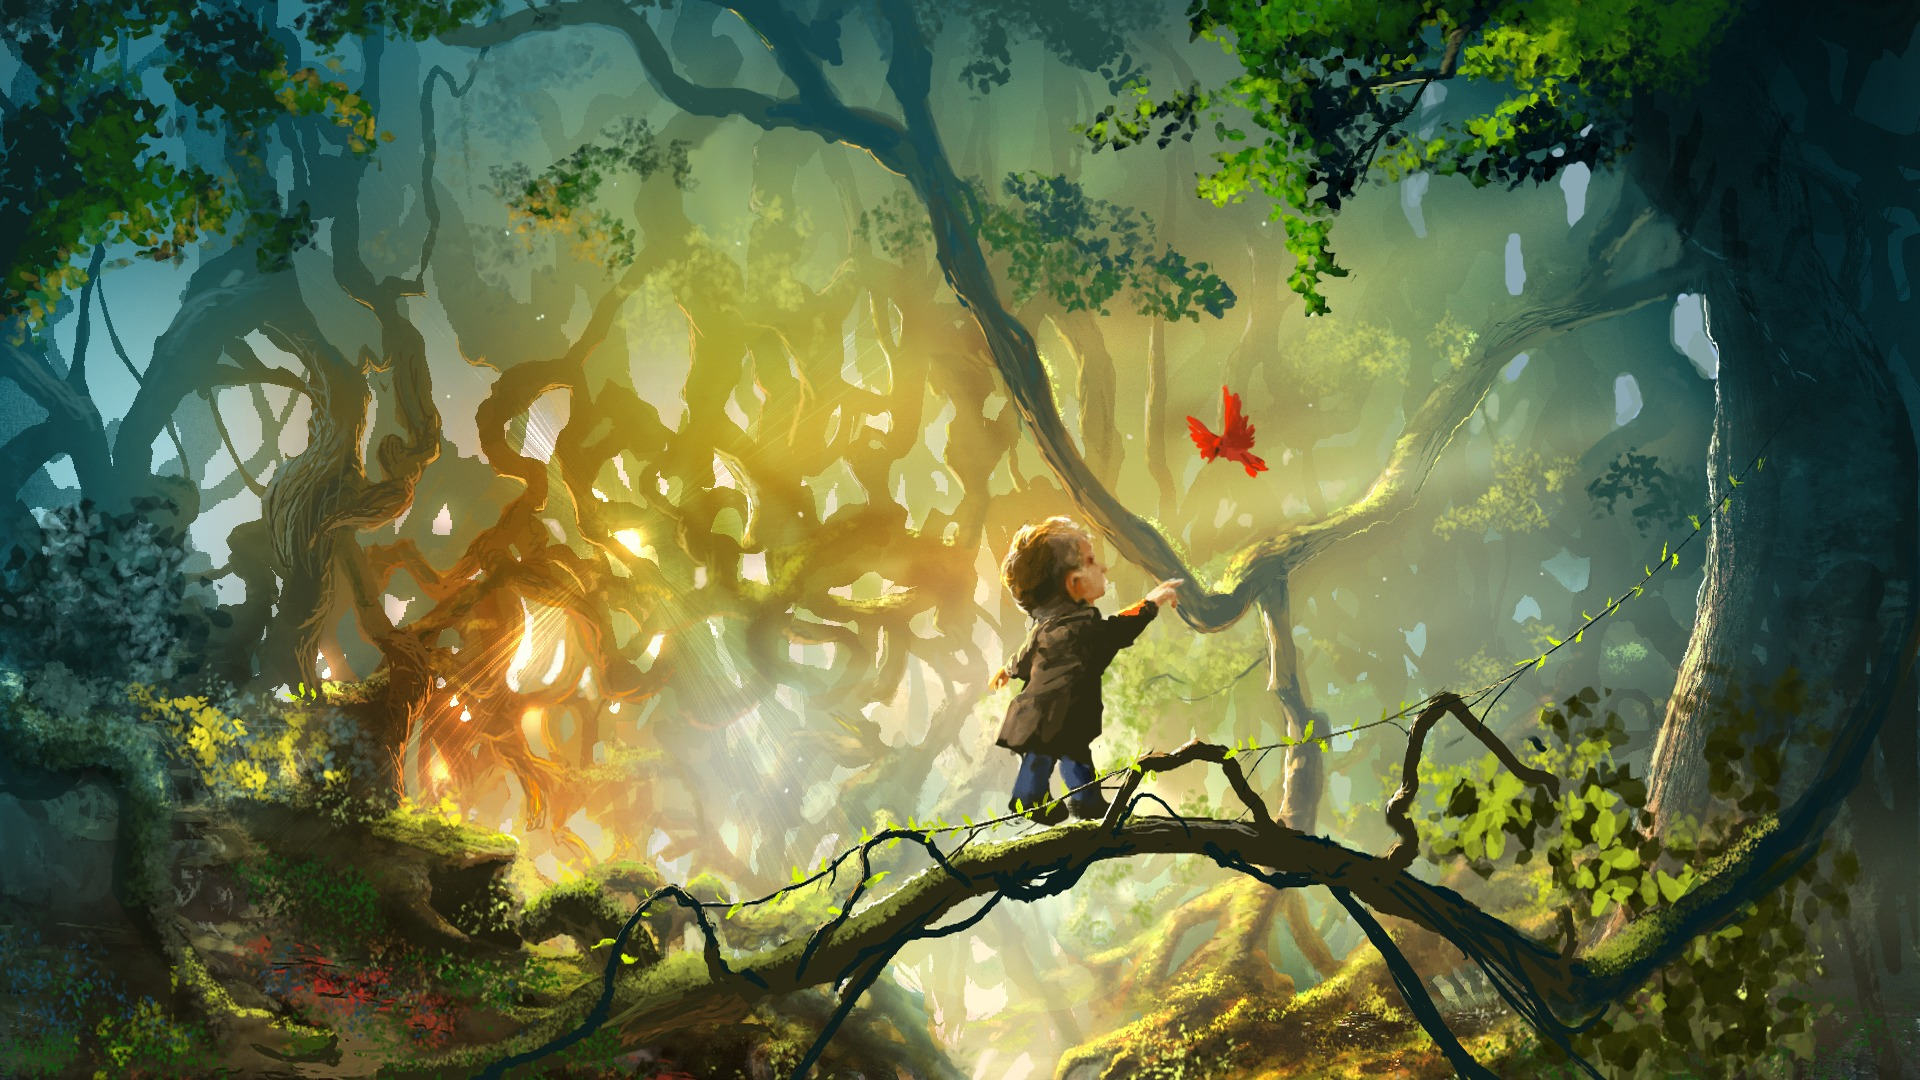 Download Wallpaper Forest Tree Light 1920x1080 Fairy Forest